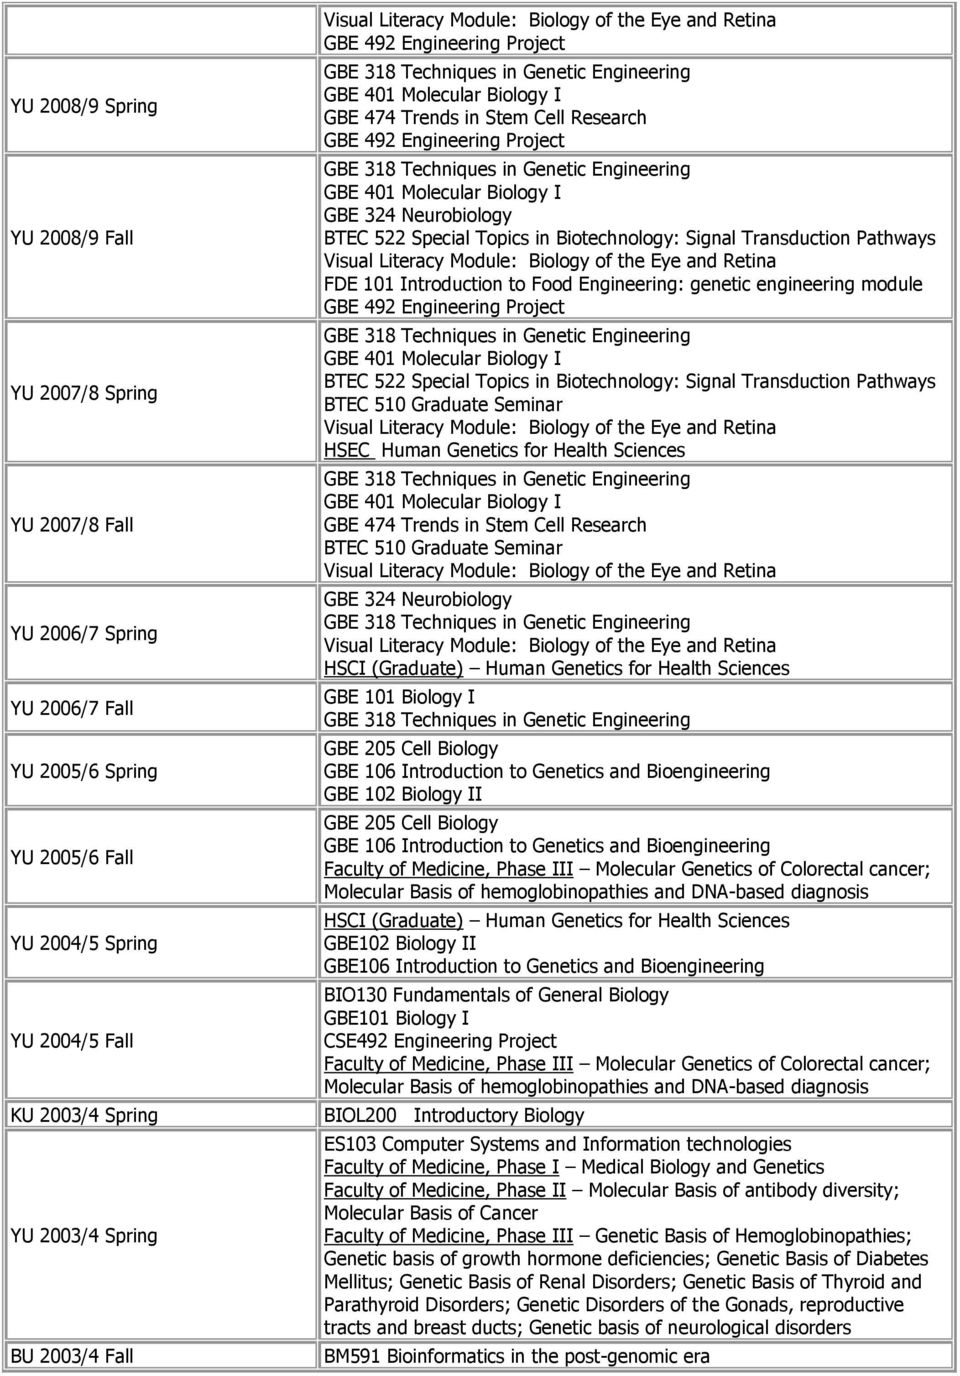 Research GBE 492 Engineering Project GBE 318 Techniques in Genetic Engineering GBE 401 Molecular Biology I GBE 324 Neurobiology BTEC 522 Special Topics in Biotechnology: Signal Transduction Pathways